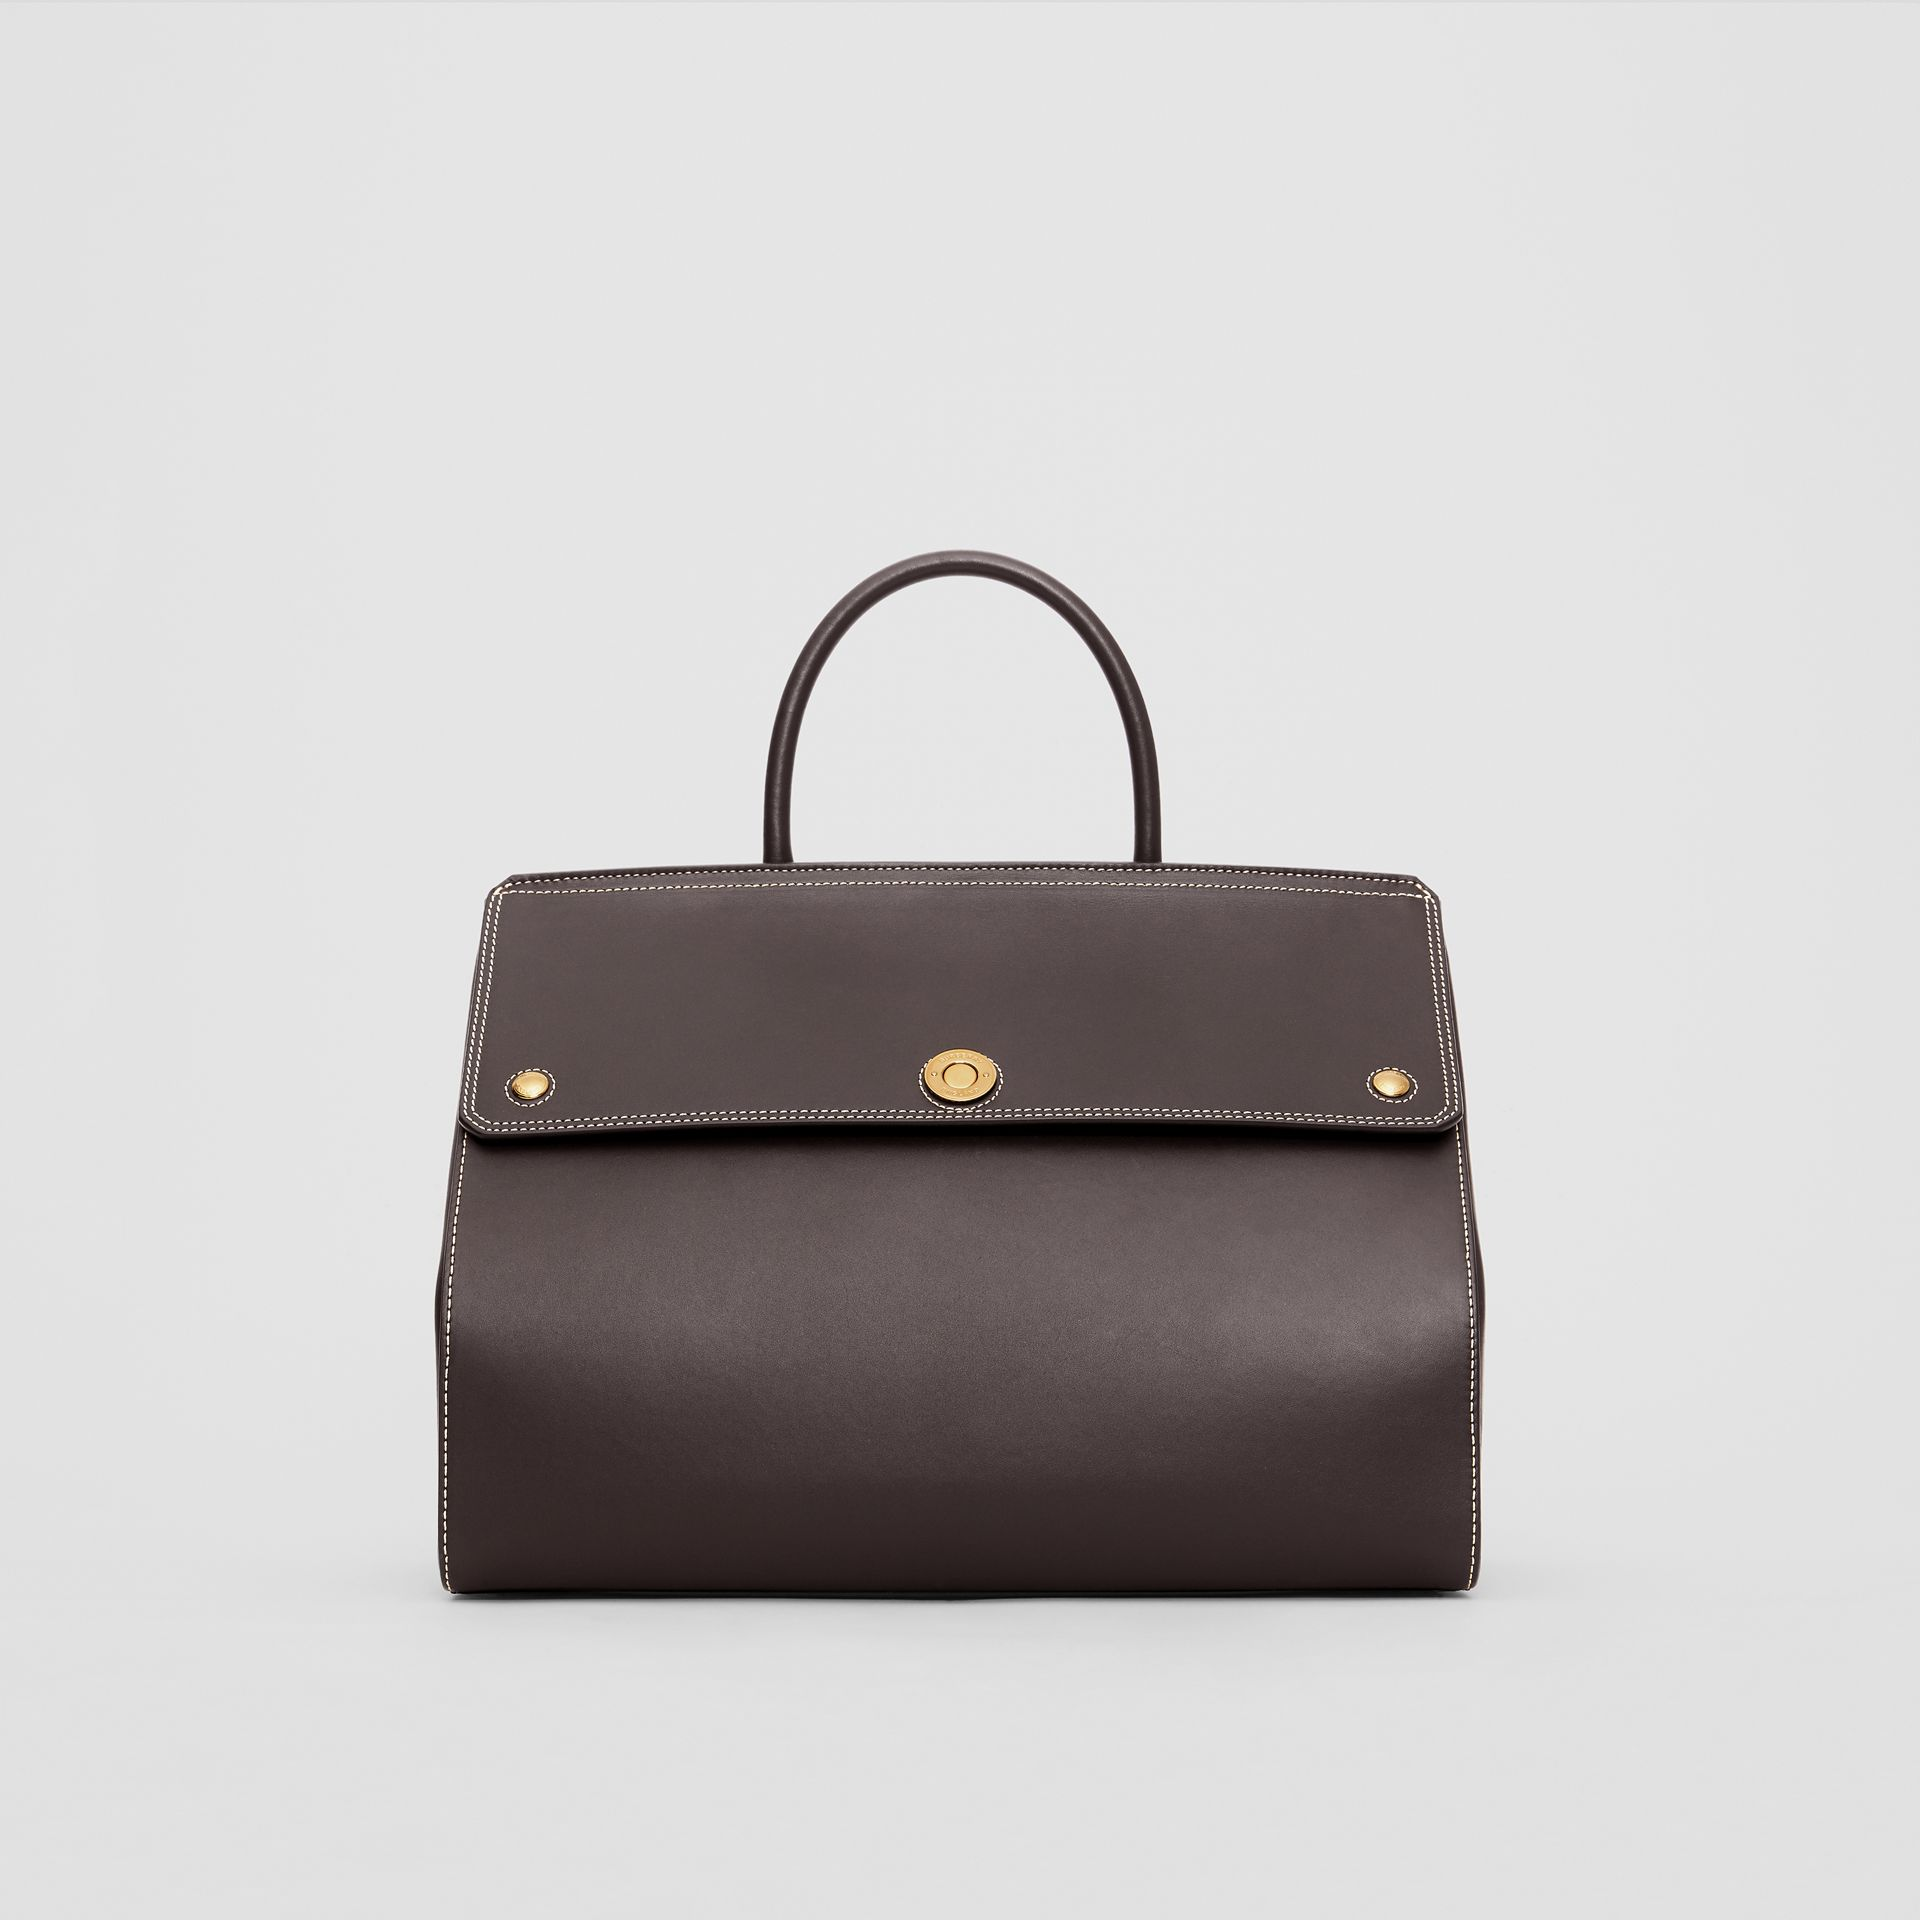 Medium Leather Elizabeth Bag in Coffee - Women | Burberry United States - gallery image 0